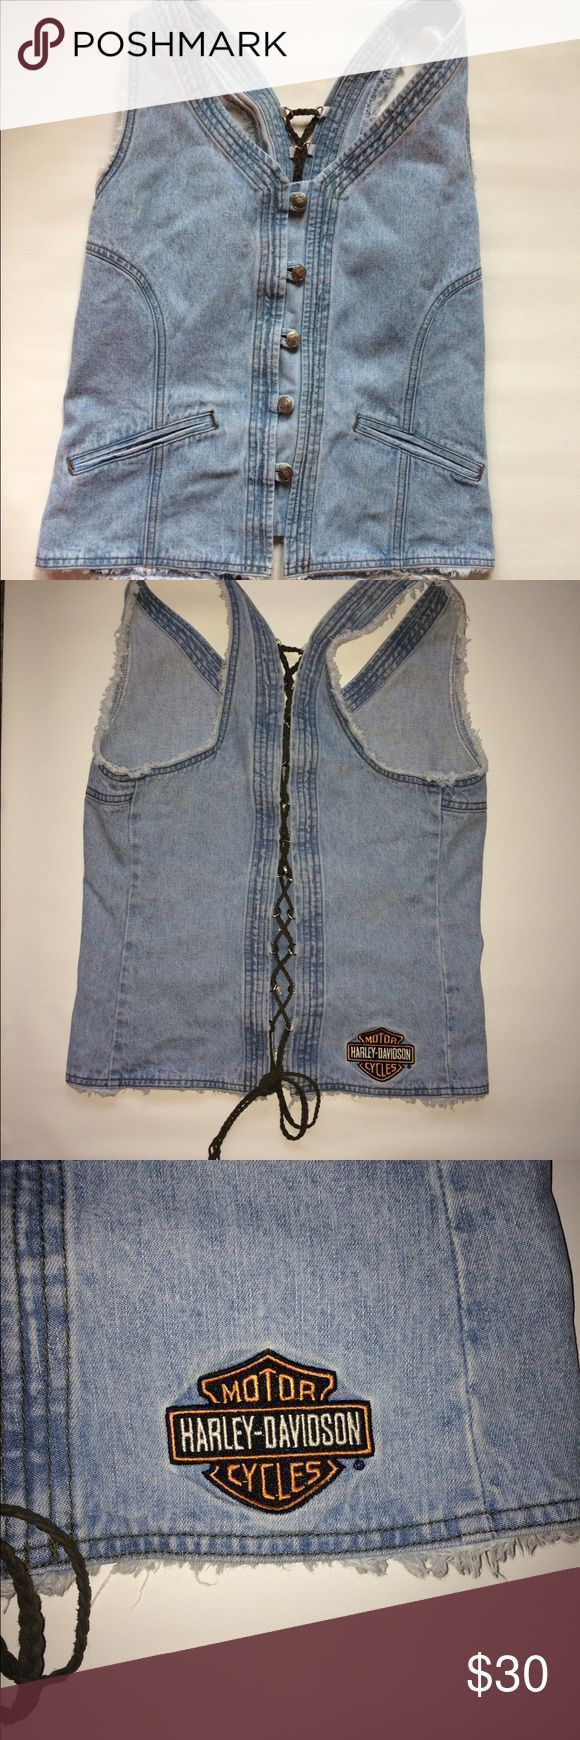 Harley Davidson Denim Vest Motorcycle Biker Light wash. Button down. Front pockets. Olive color braided leather tie up on back (can be adjusted to fit better) Distressed Hem all around  Material: 100% Cotton Condition: Good, minor discoloration on top front chest. Size Tag Reads:  XL Measurements:  Chest: 34 Inches (17 inches across form armpit to armpit X 2) Waist: 34 Inches (17 inches across X 2) Length: 23 Inches Arm hole opening: 23 Inches around:  Thank you so much for stopping by.I…